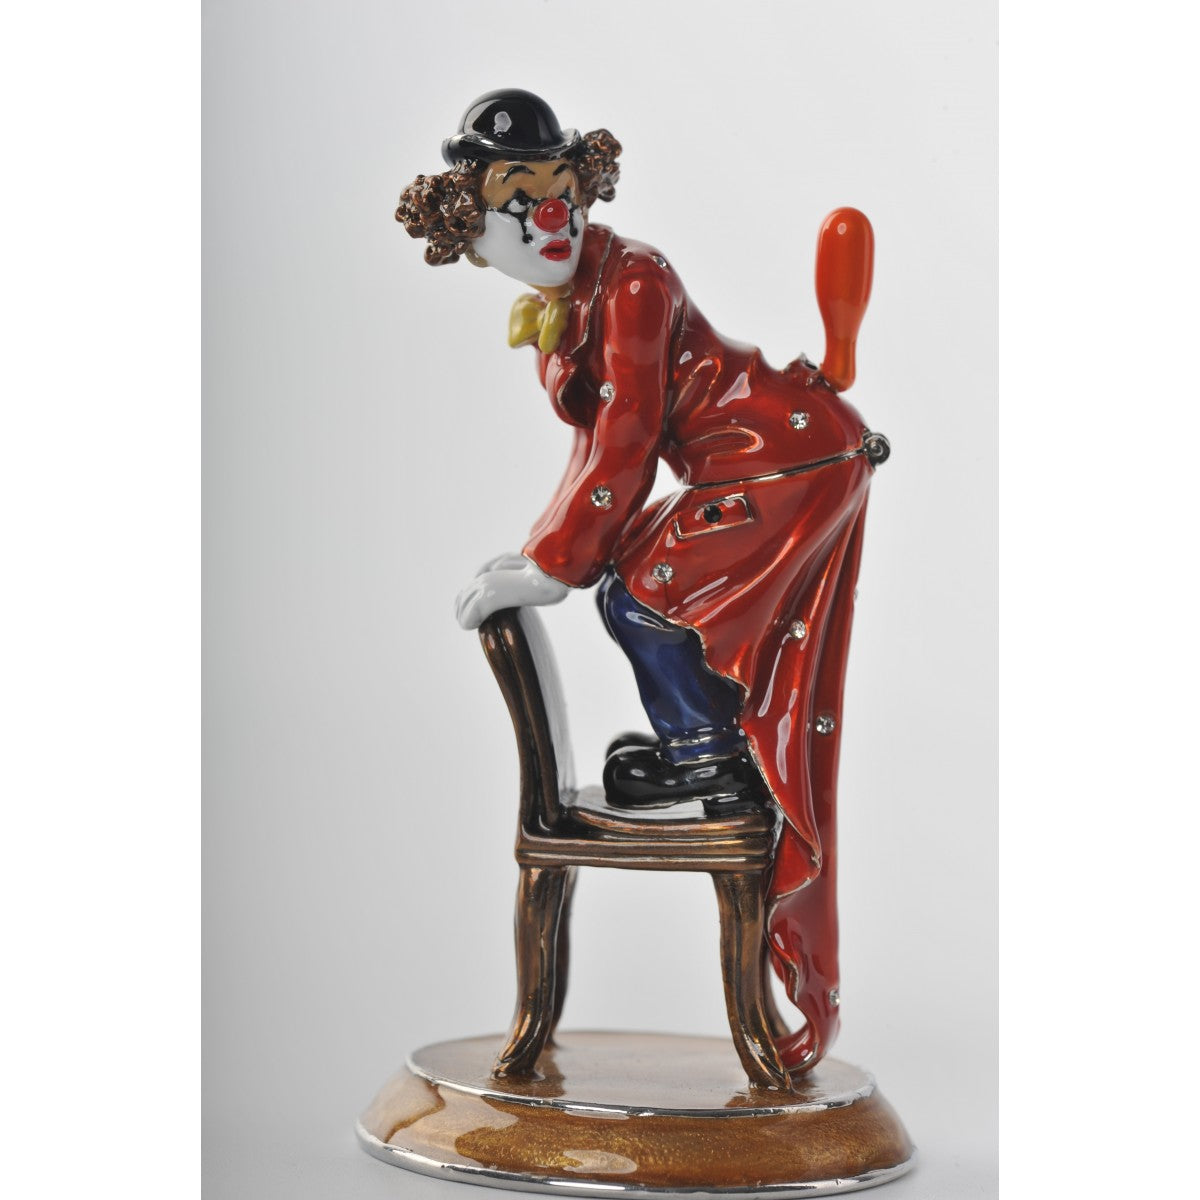 Circus Clown on chair by Keren Kopal